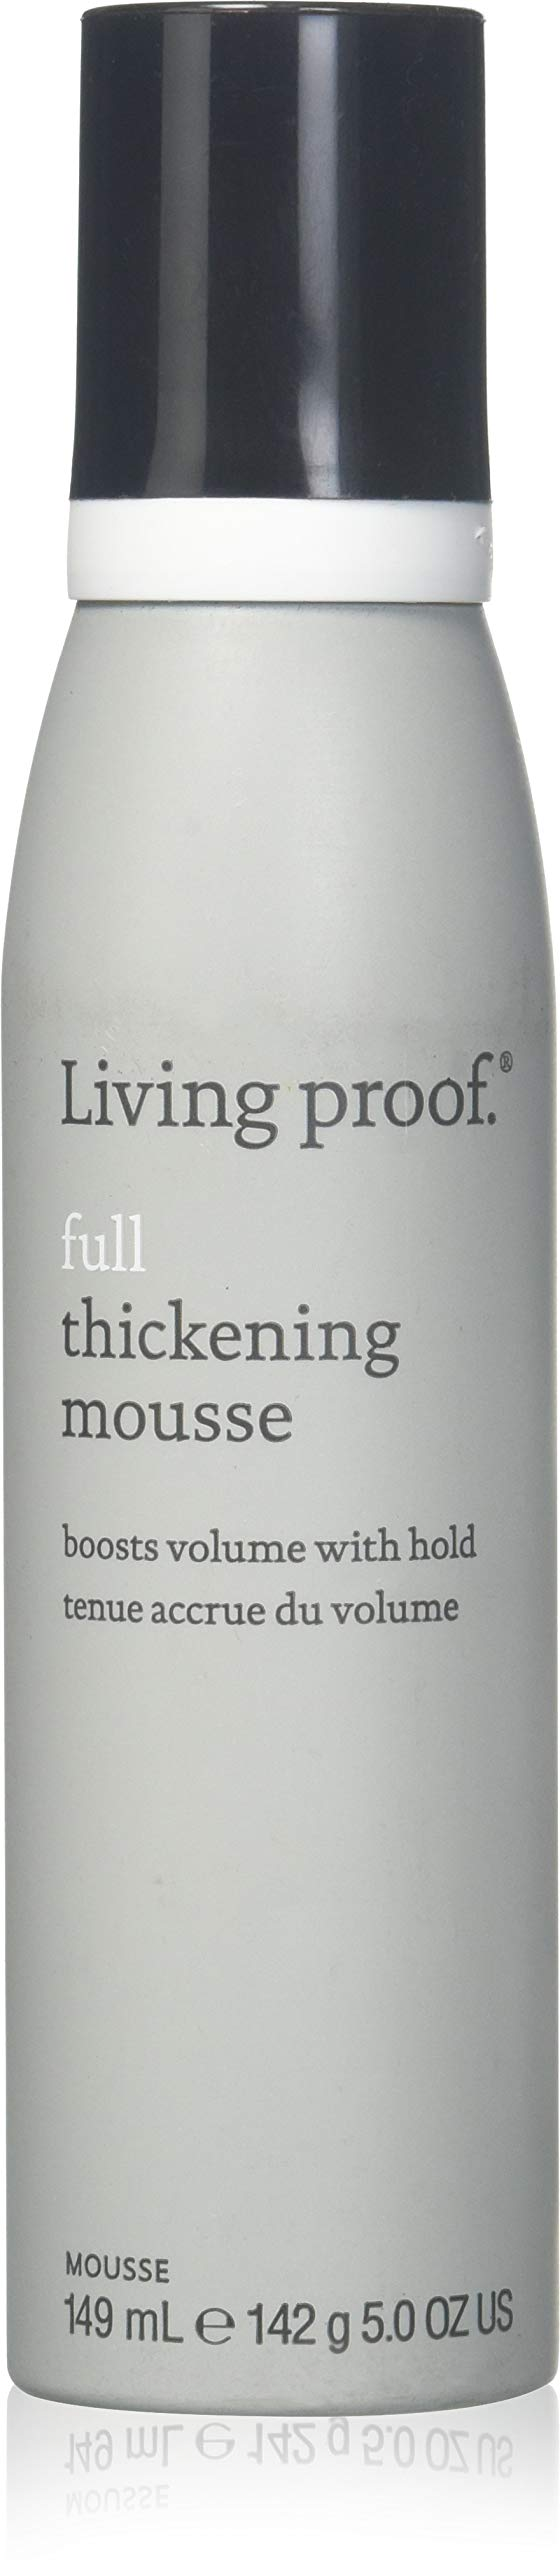 Living Proof Full Thickening Mousse 5 oz 01531